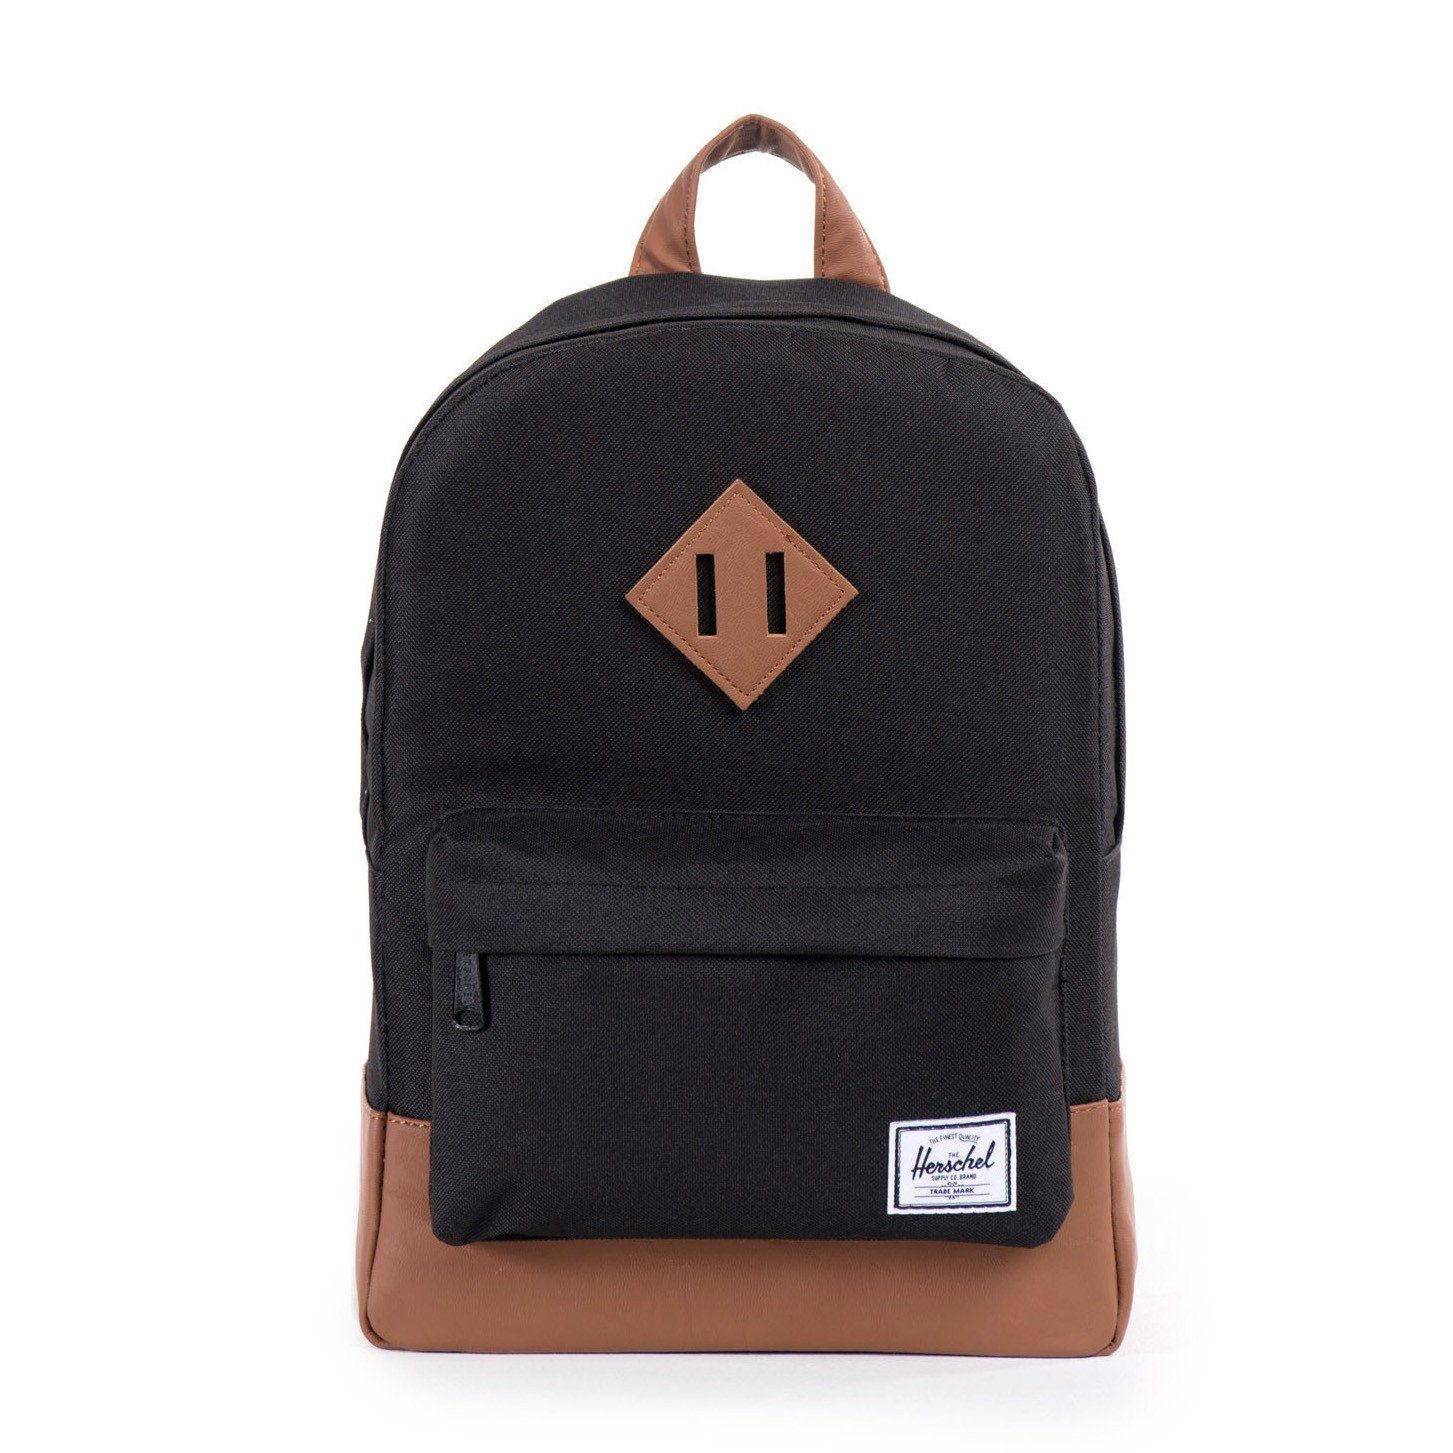 88bf0d043c37 Herschel Supply Co. Heritage Kids Backpack - Jet-Setter.ca